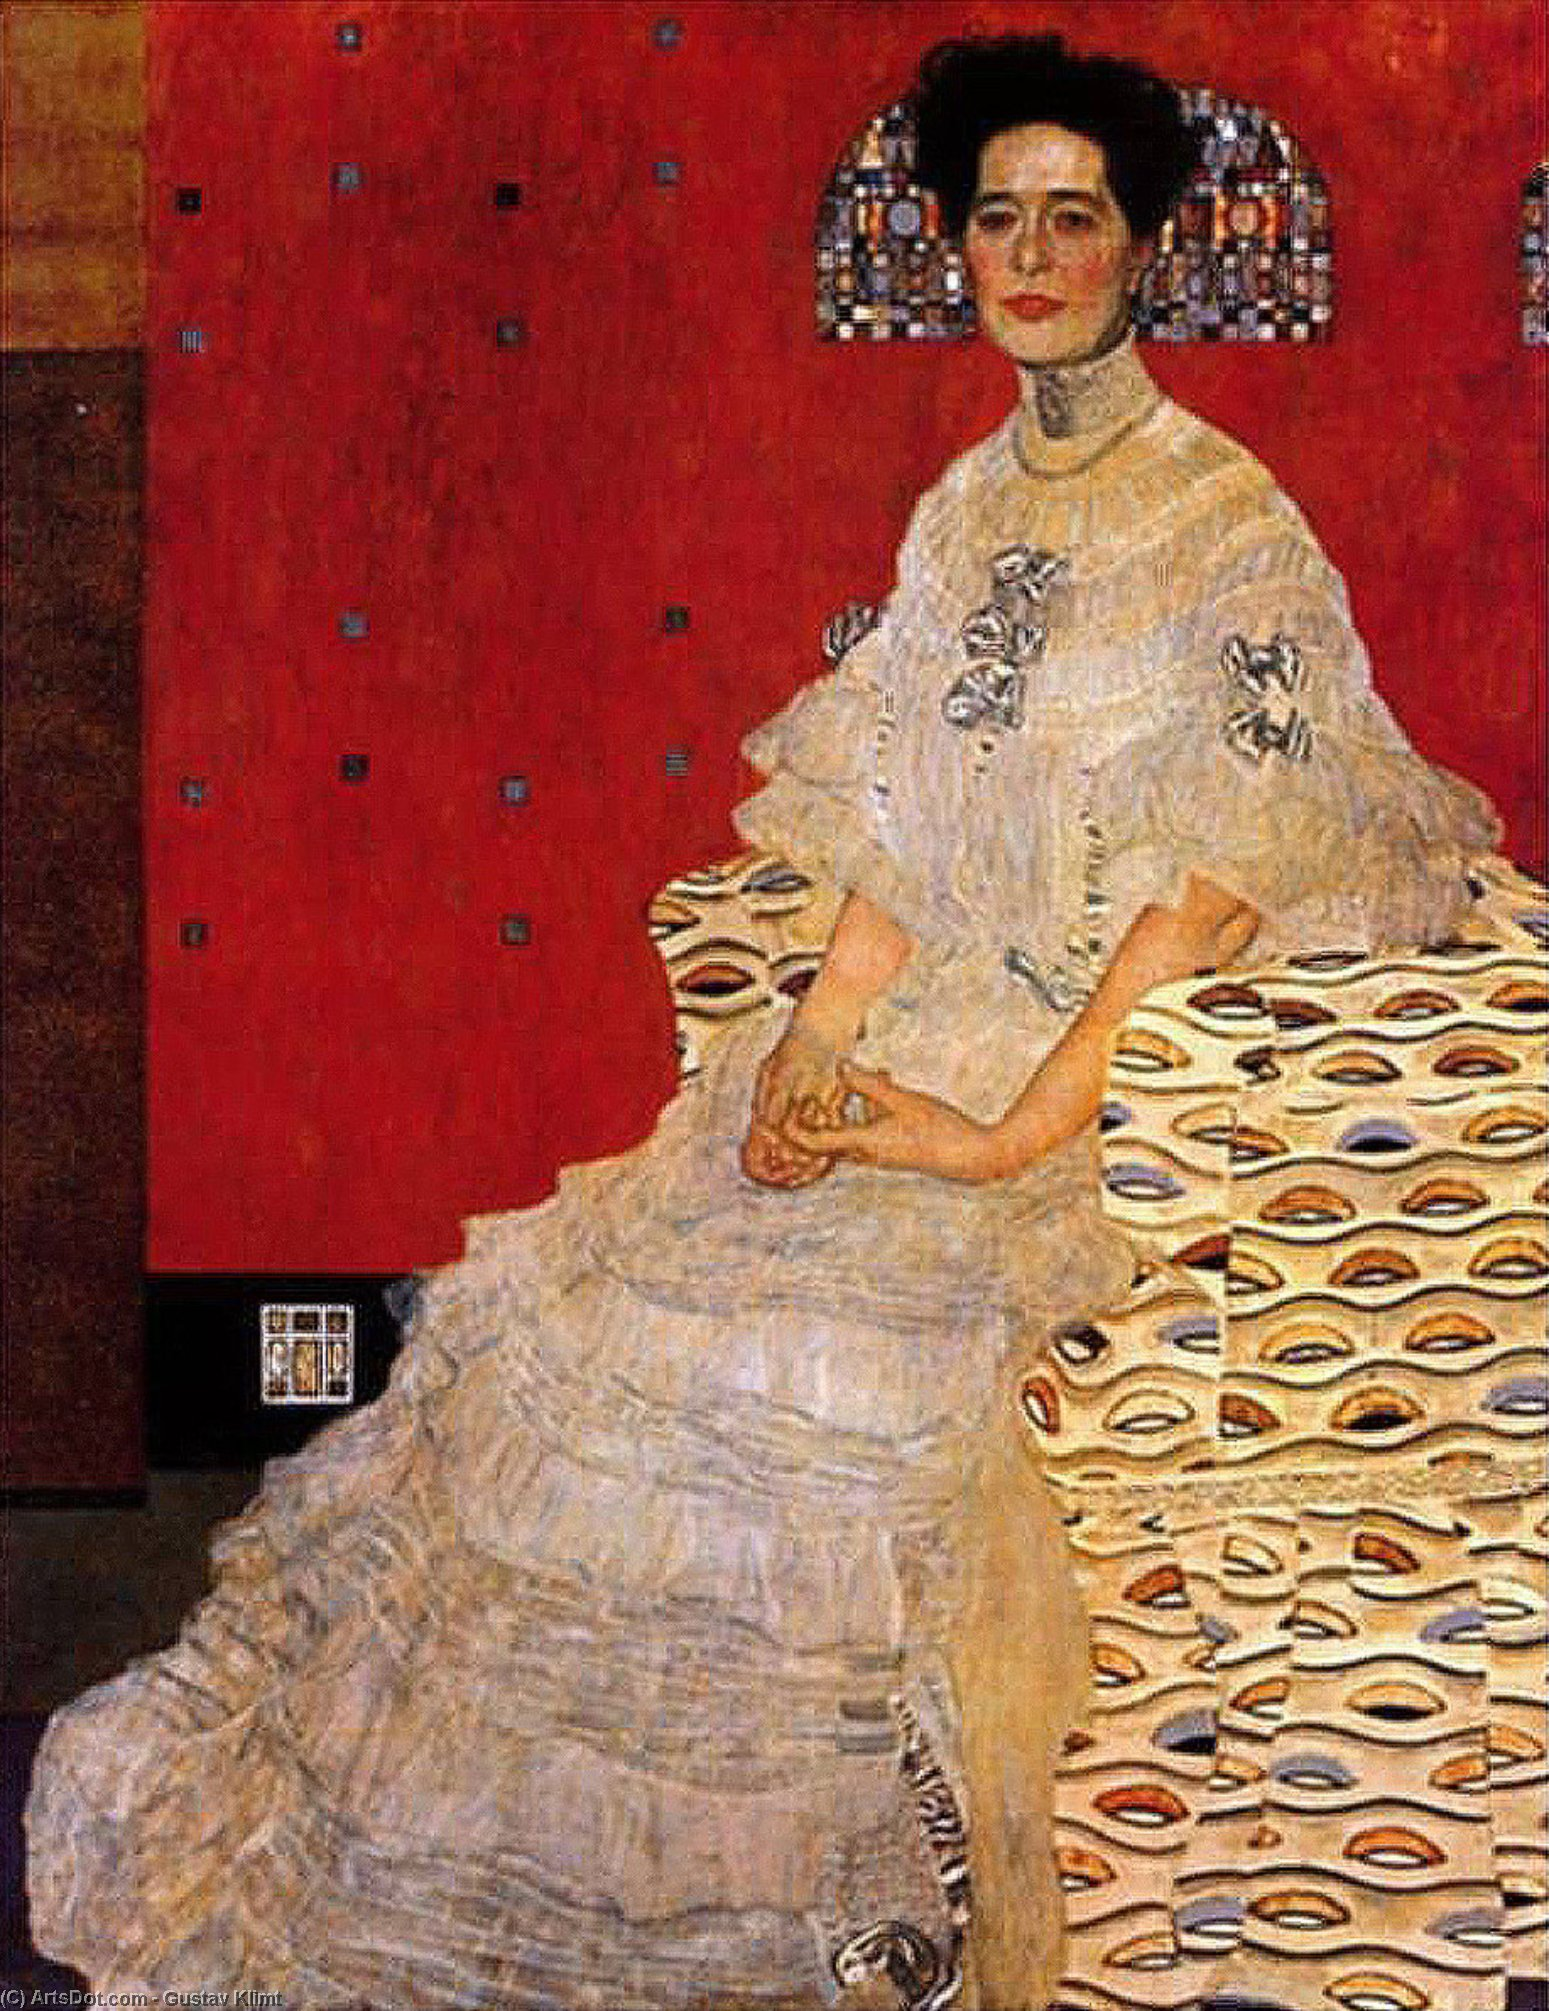 Wikioo.org - The Encyclopedia of Fine Arts - Painting, Artwork by Gustav Klimt - Bildnis Fritza Riedler, 1906 - Österreichische Galerie, Vienna